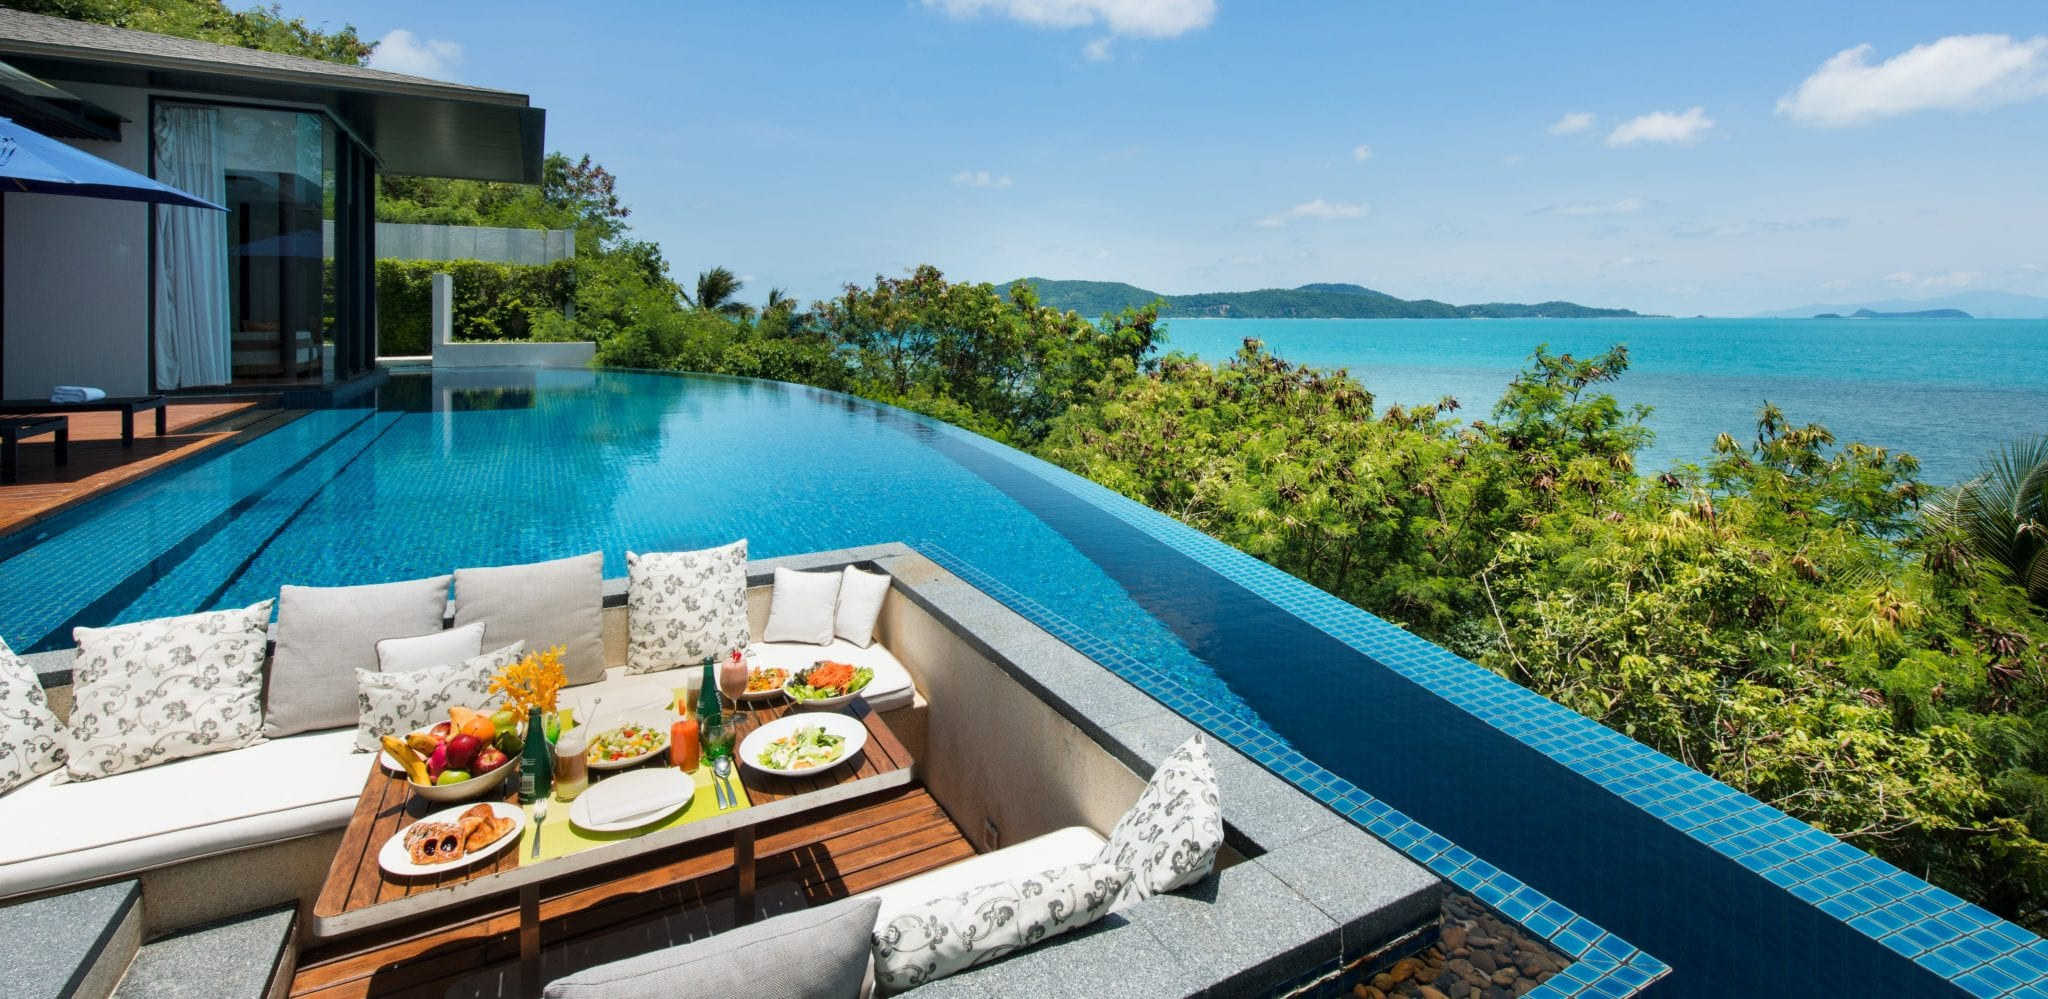 Pool breakfast at Conrad Koh Samui